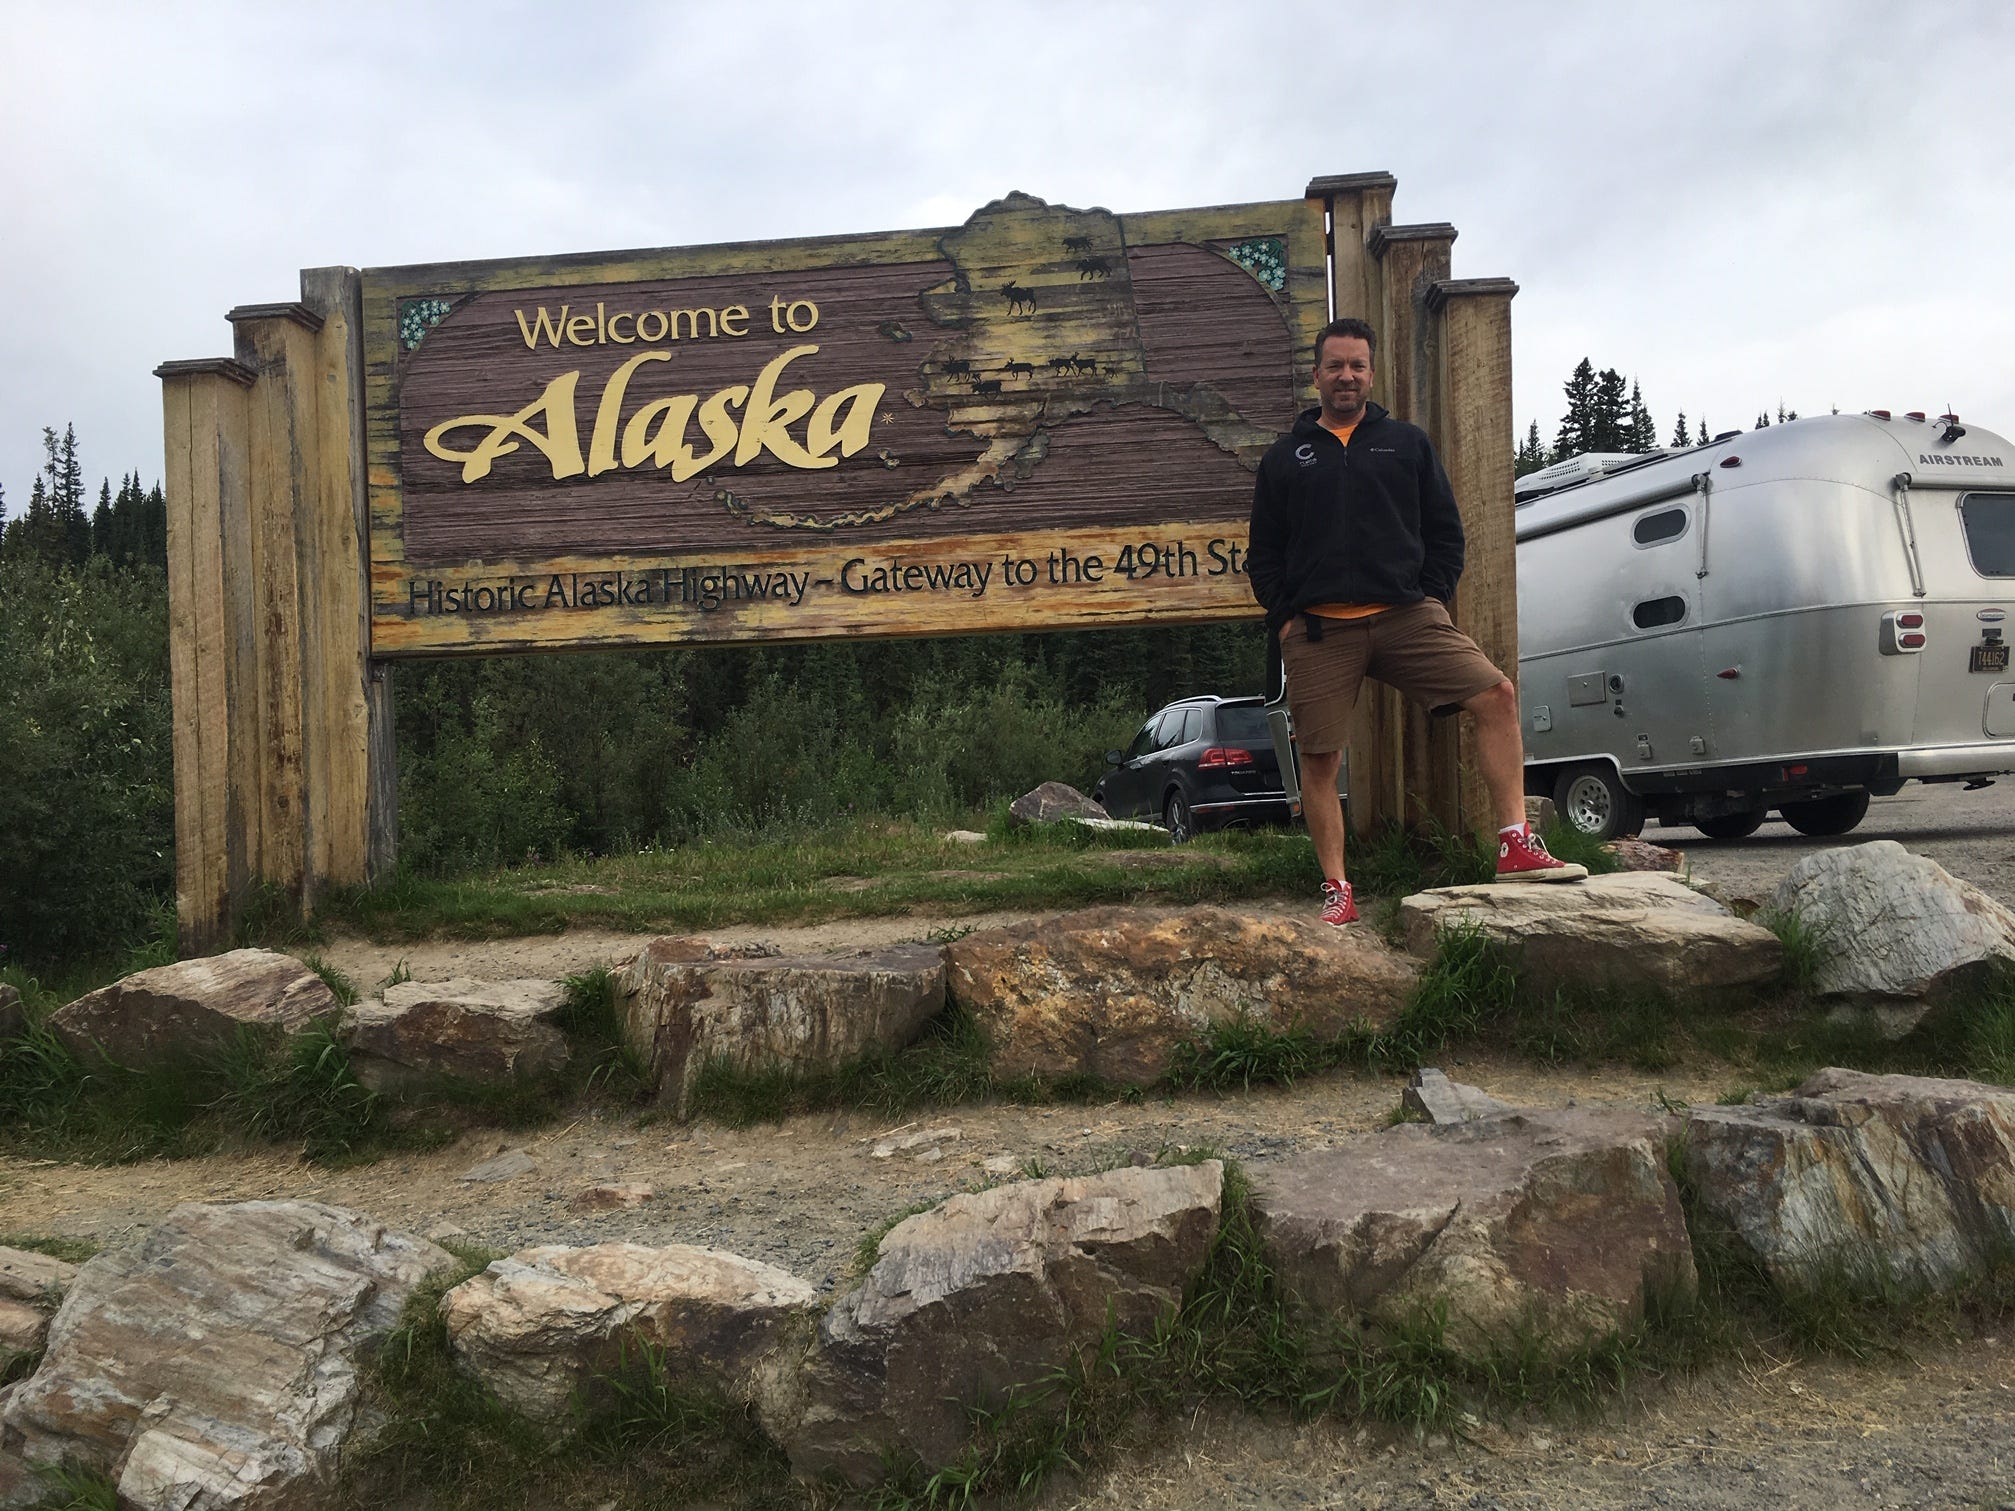 Dan McDougall from Wilmington, Delaware took a 14,000 mile trip to Alaska during the summer of 2018 with his Airstream in tow.